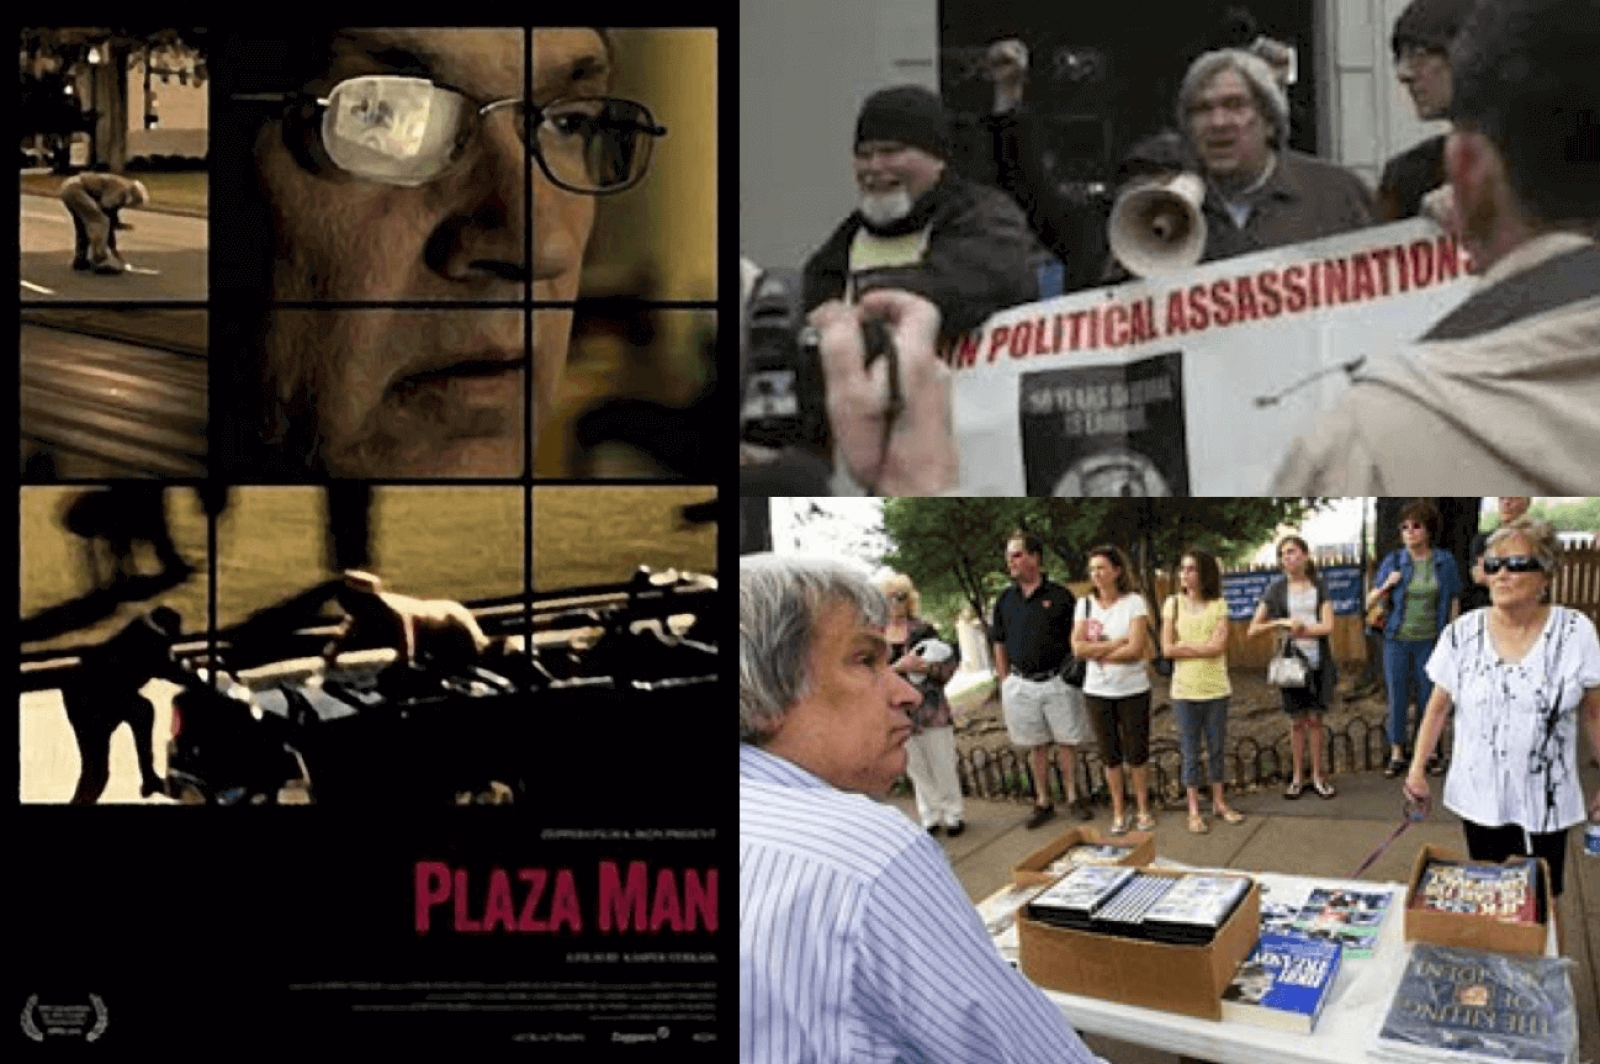 Plaza Man: Robert Groden vs. the City of Dallas